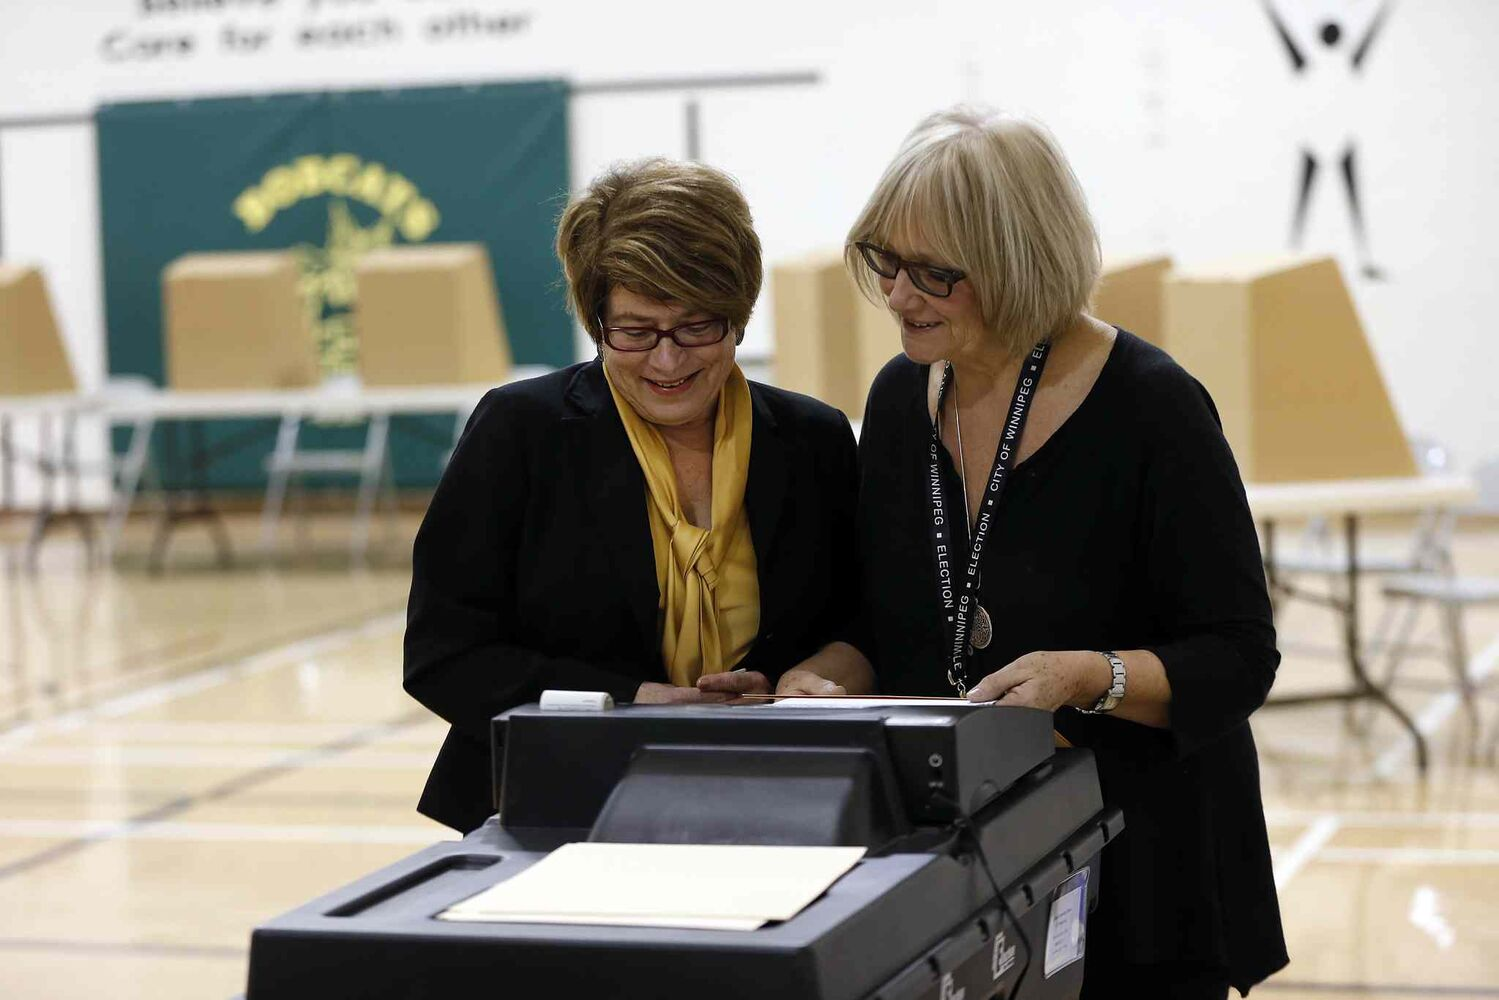 Judy Wasylycia-Leis, left, feeds her vote into a machine at Luxton School polling station. (KEN GIGLIOTTI / WINNIPEG FREE PRESS)